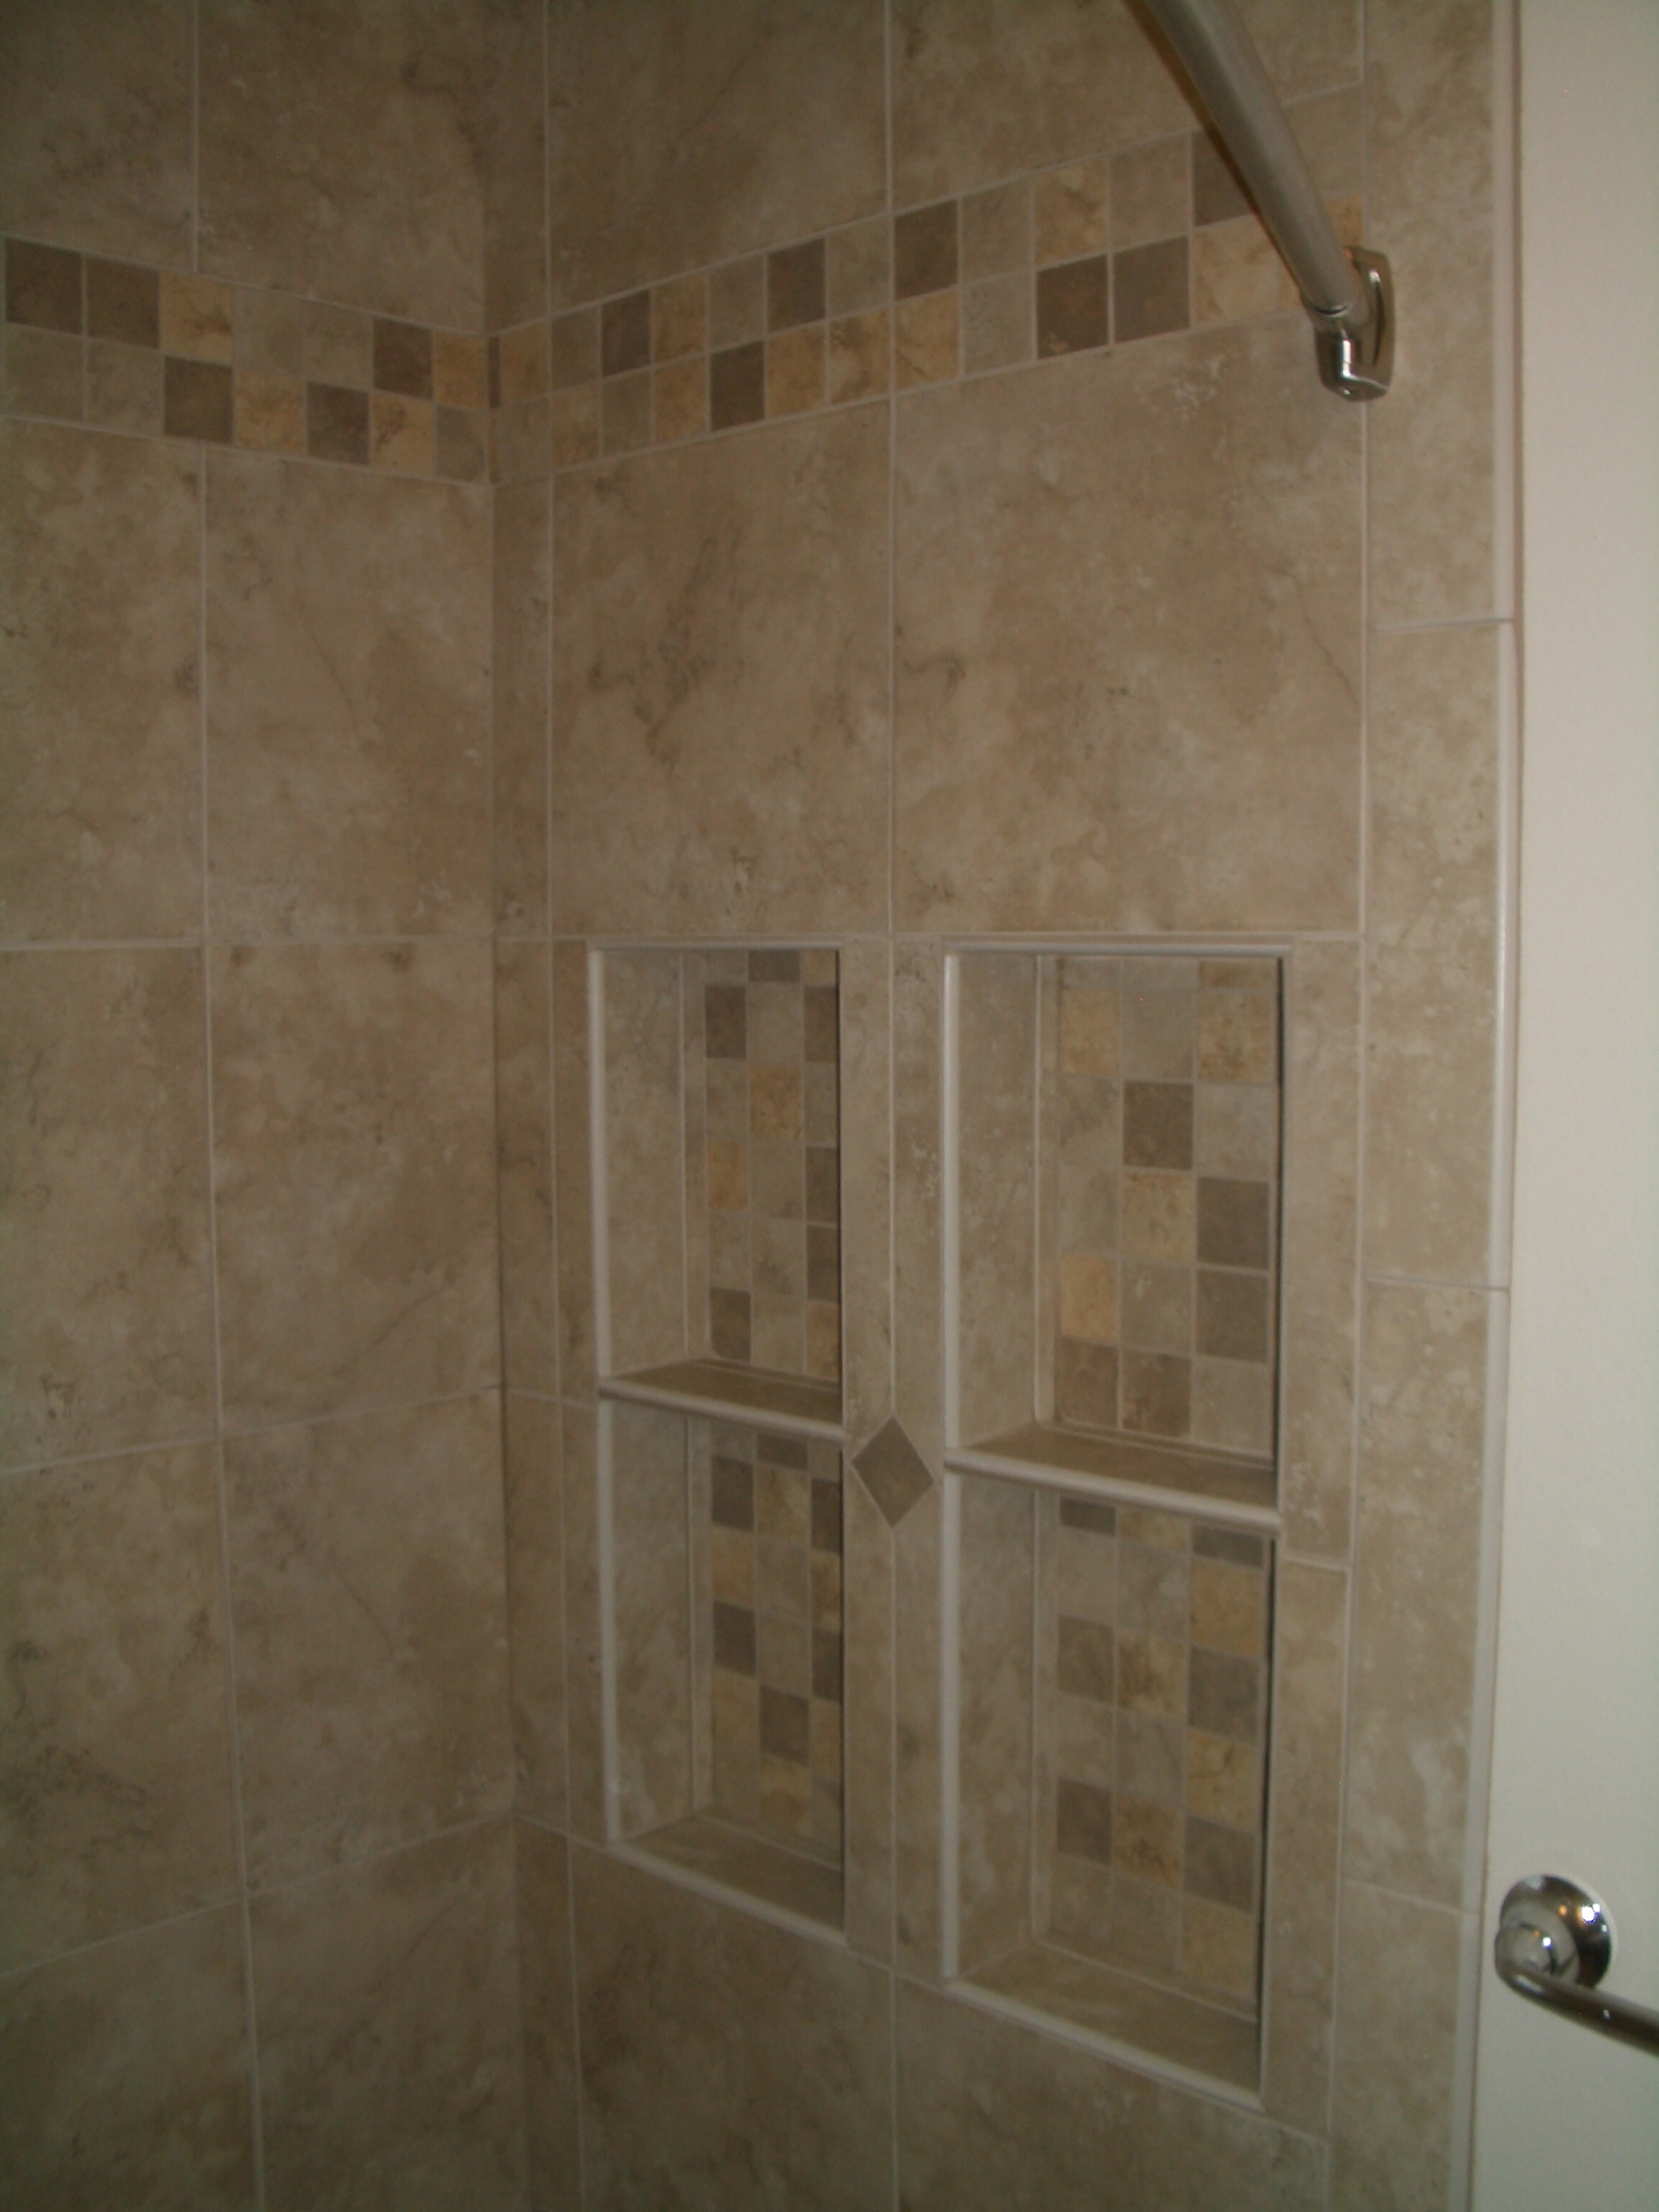 Drywall to backerboard transition in tiled showers Tile a shower